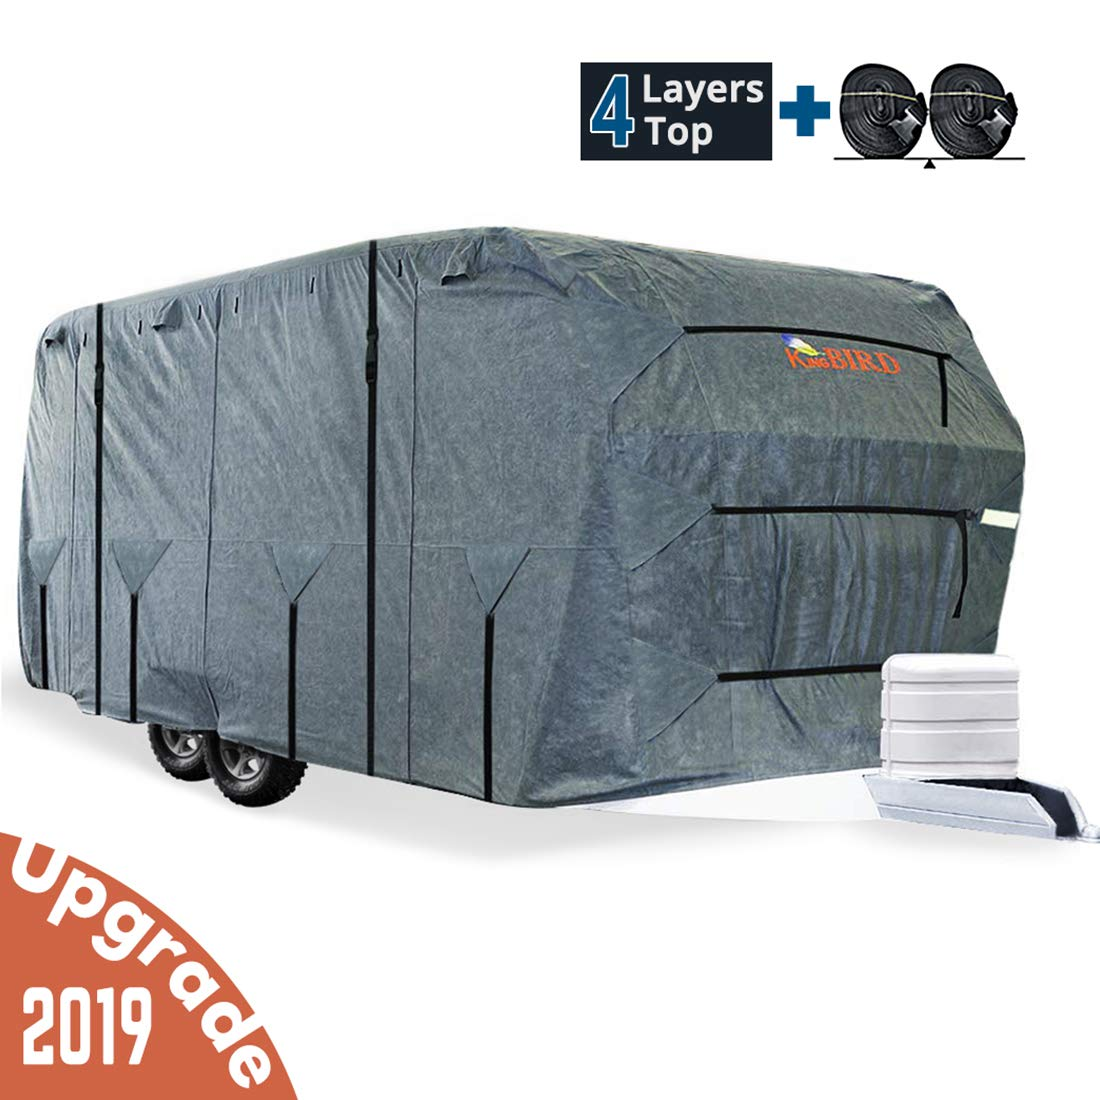 King Bird Extra-Thick-4-Ply Deluxe Camper Travel Trailer Cover